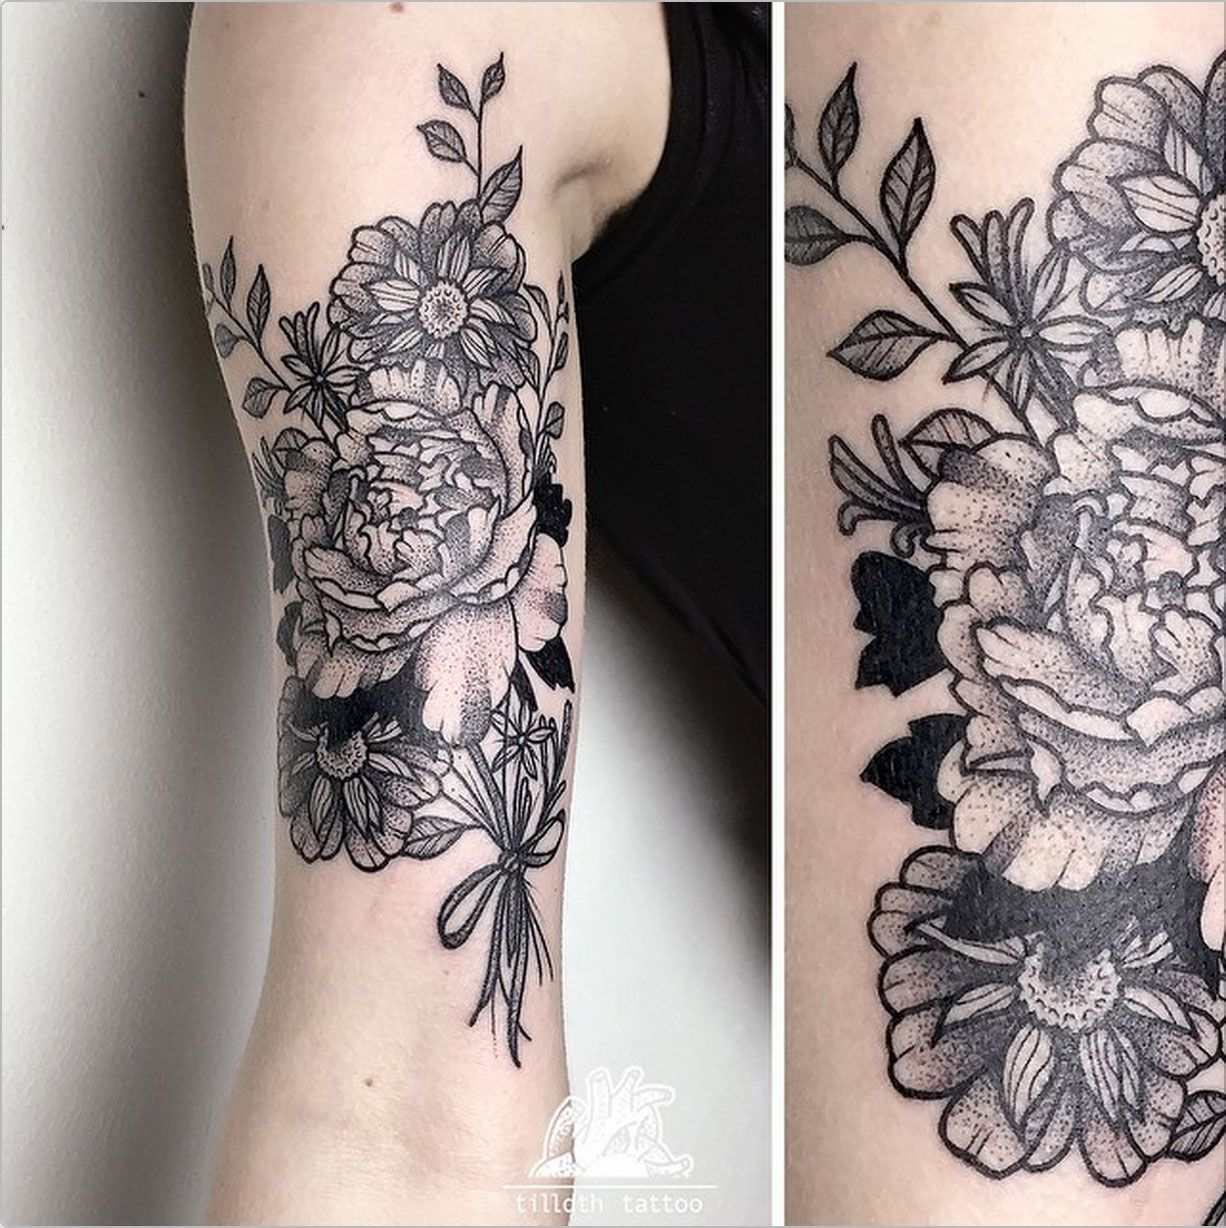 Dotwork Flower Bouquet By Sarah Herzdame Tilldthtattoo On Ig